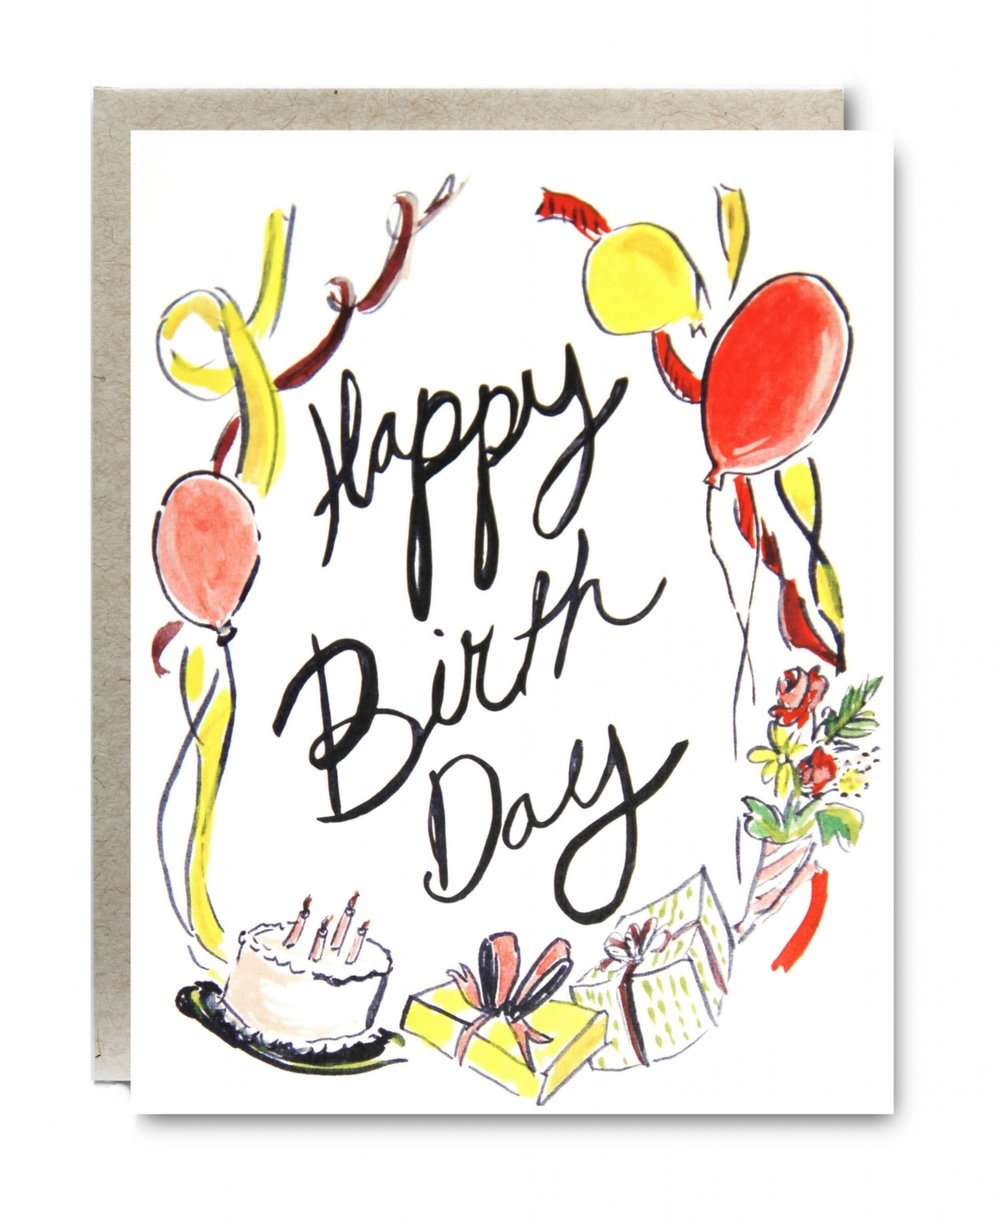 Happy Birthday with Balloons Card - $5.00